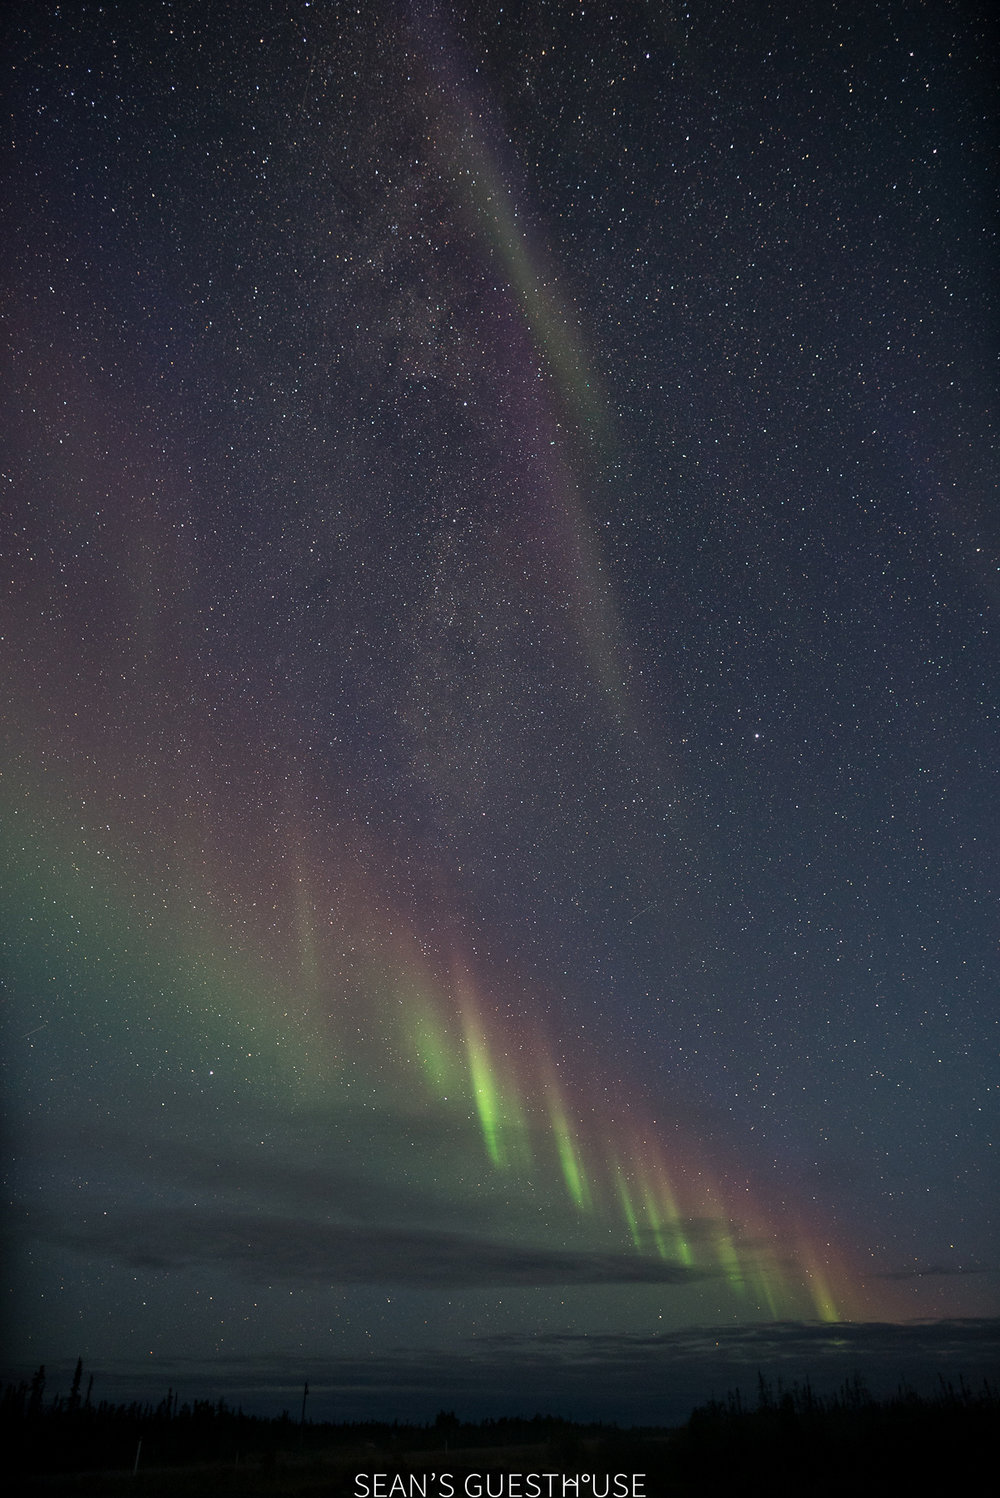 The Best Place to See the Northern Lights - Sean's Guesthouse - 6.jpg